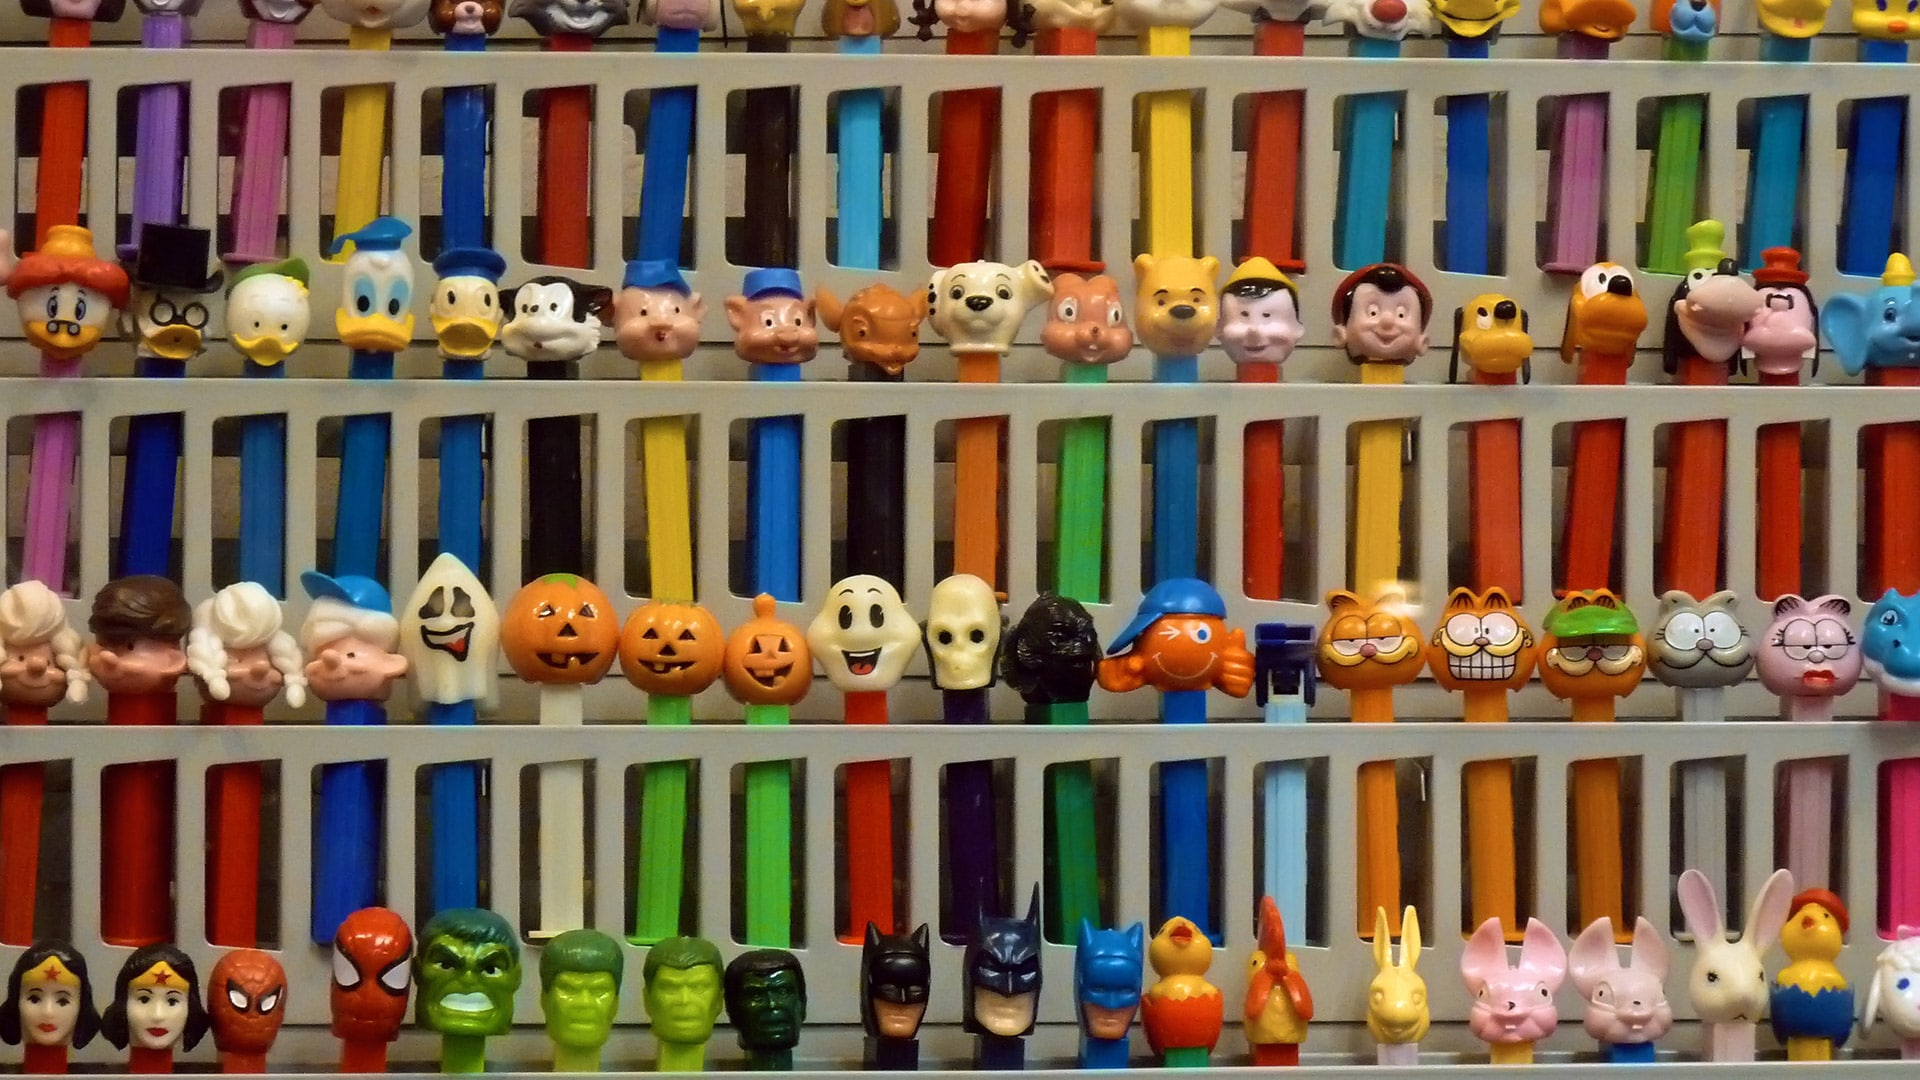 Display at the Pez Museum. Photo by Ingrid Taylar viaFlickr